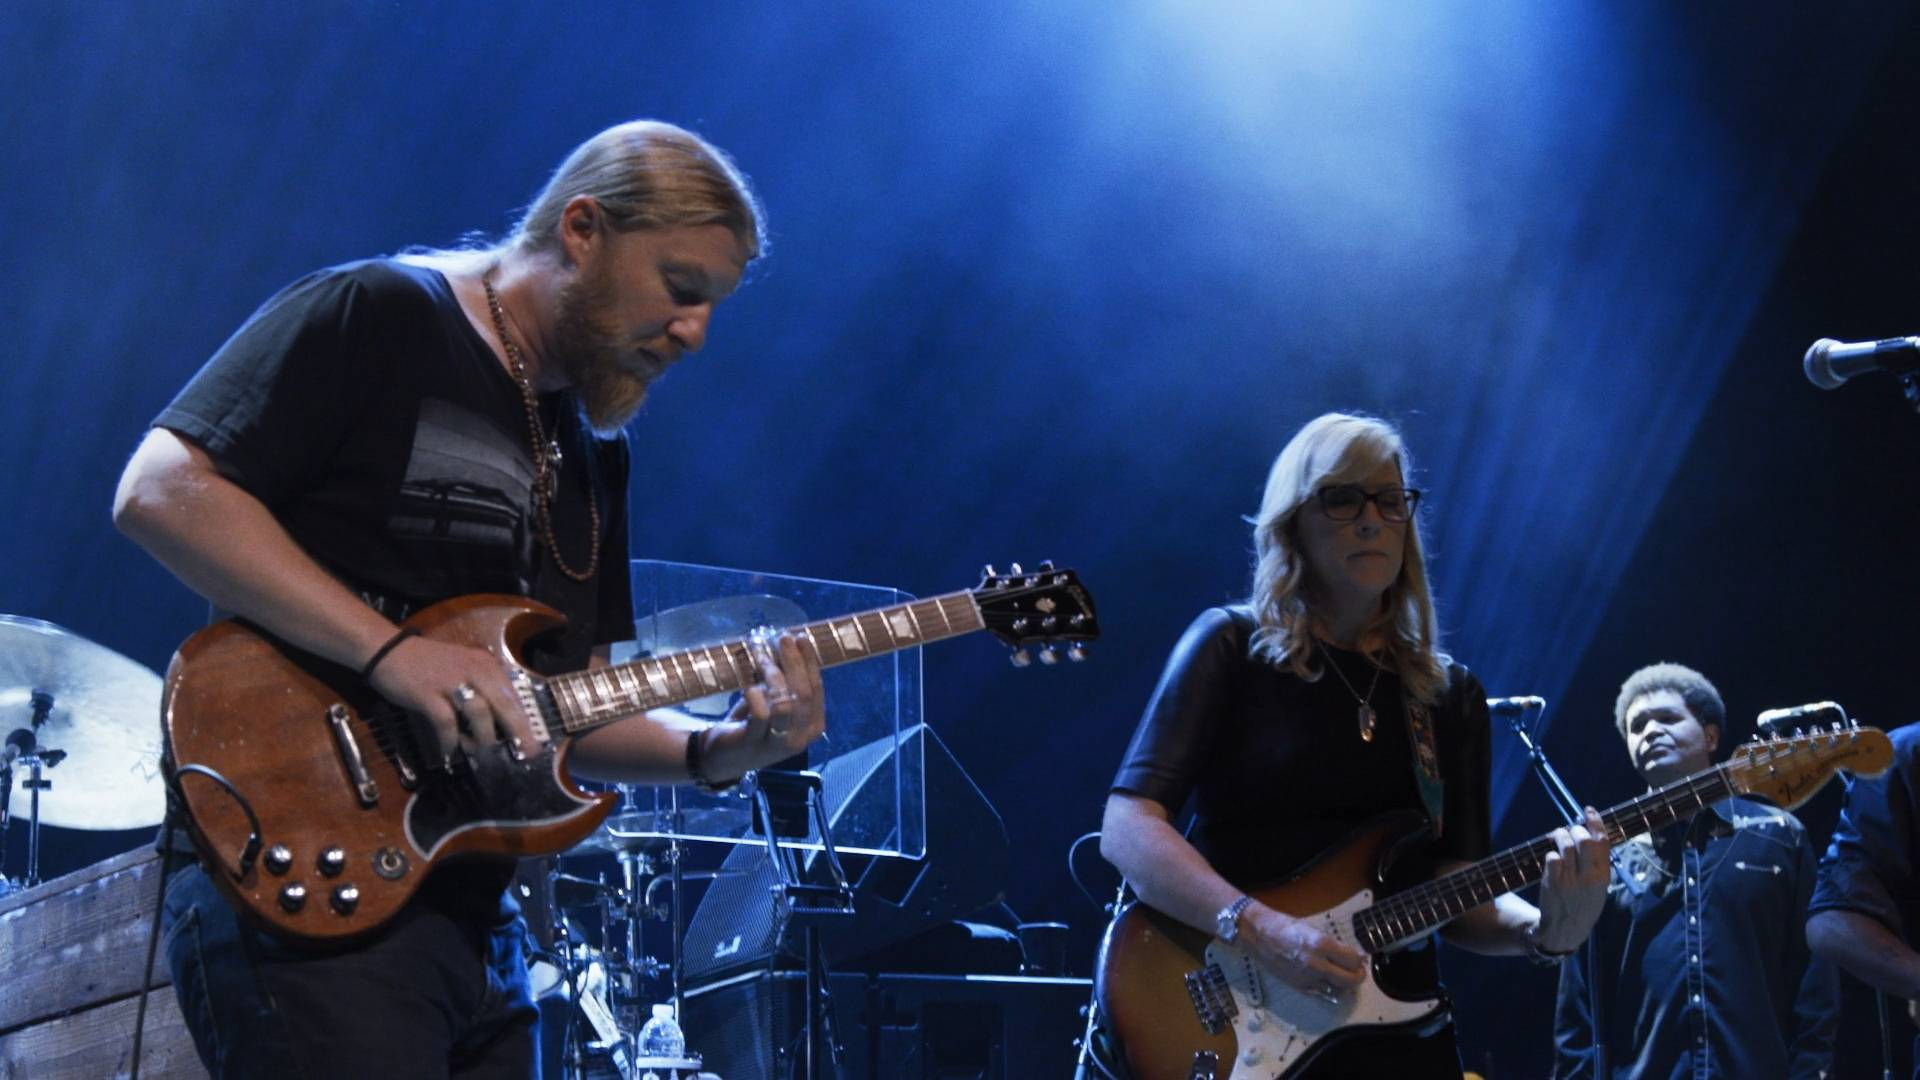 Tedeschi Trucks Band Live From The Fox Oakland 2017